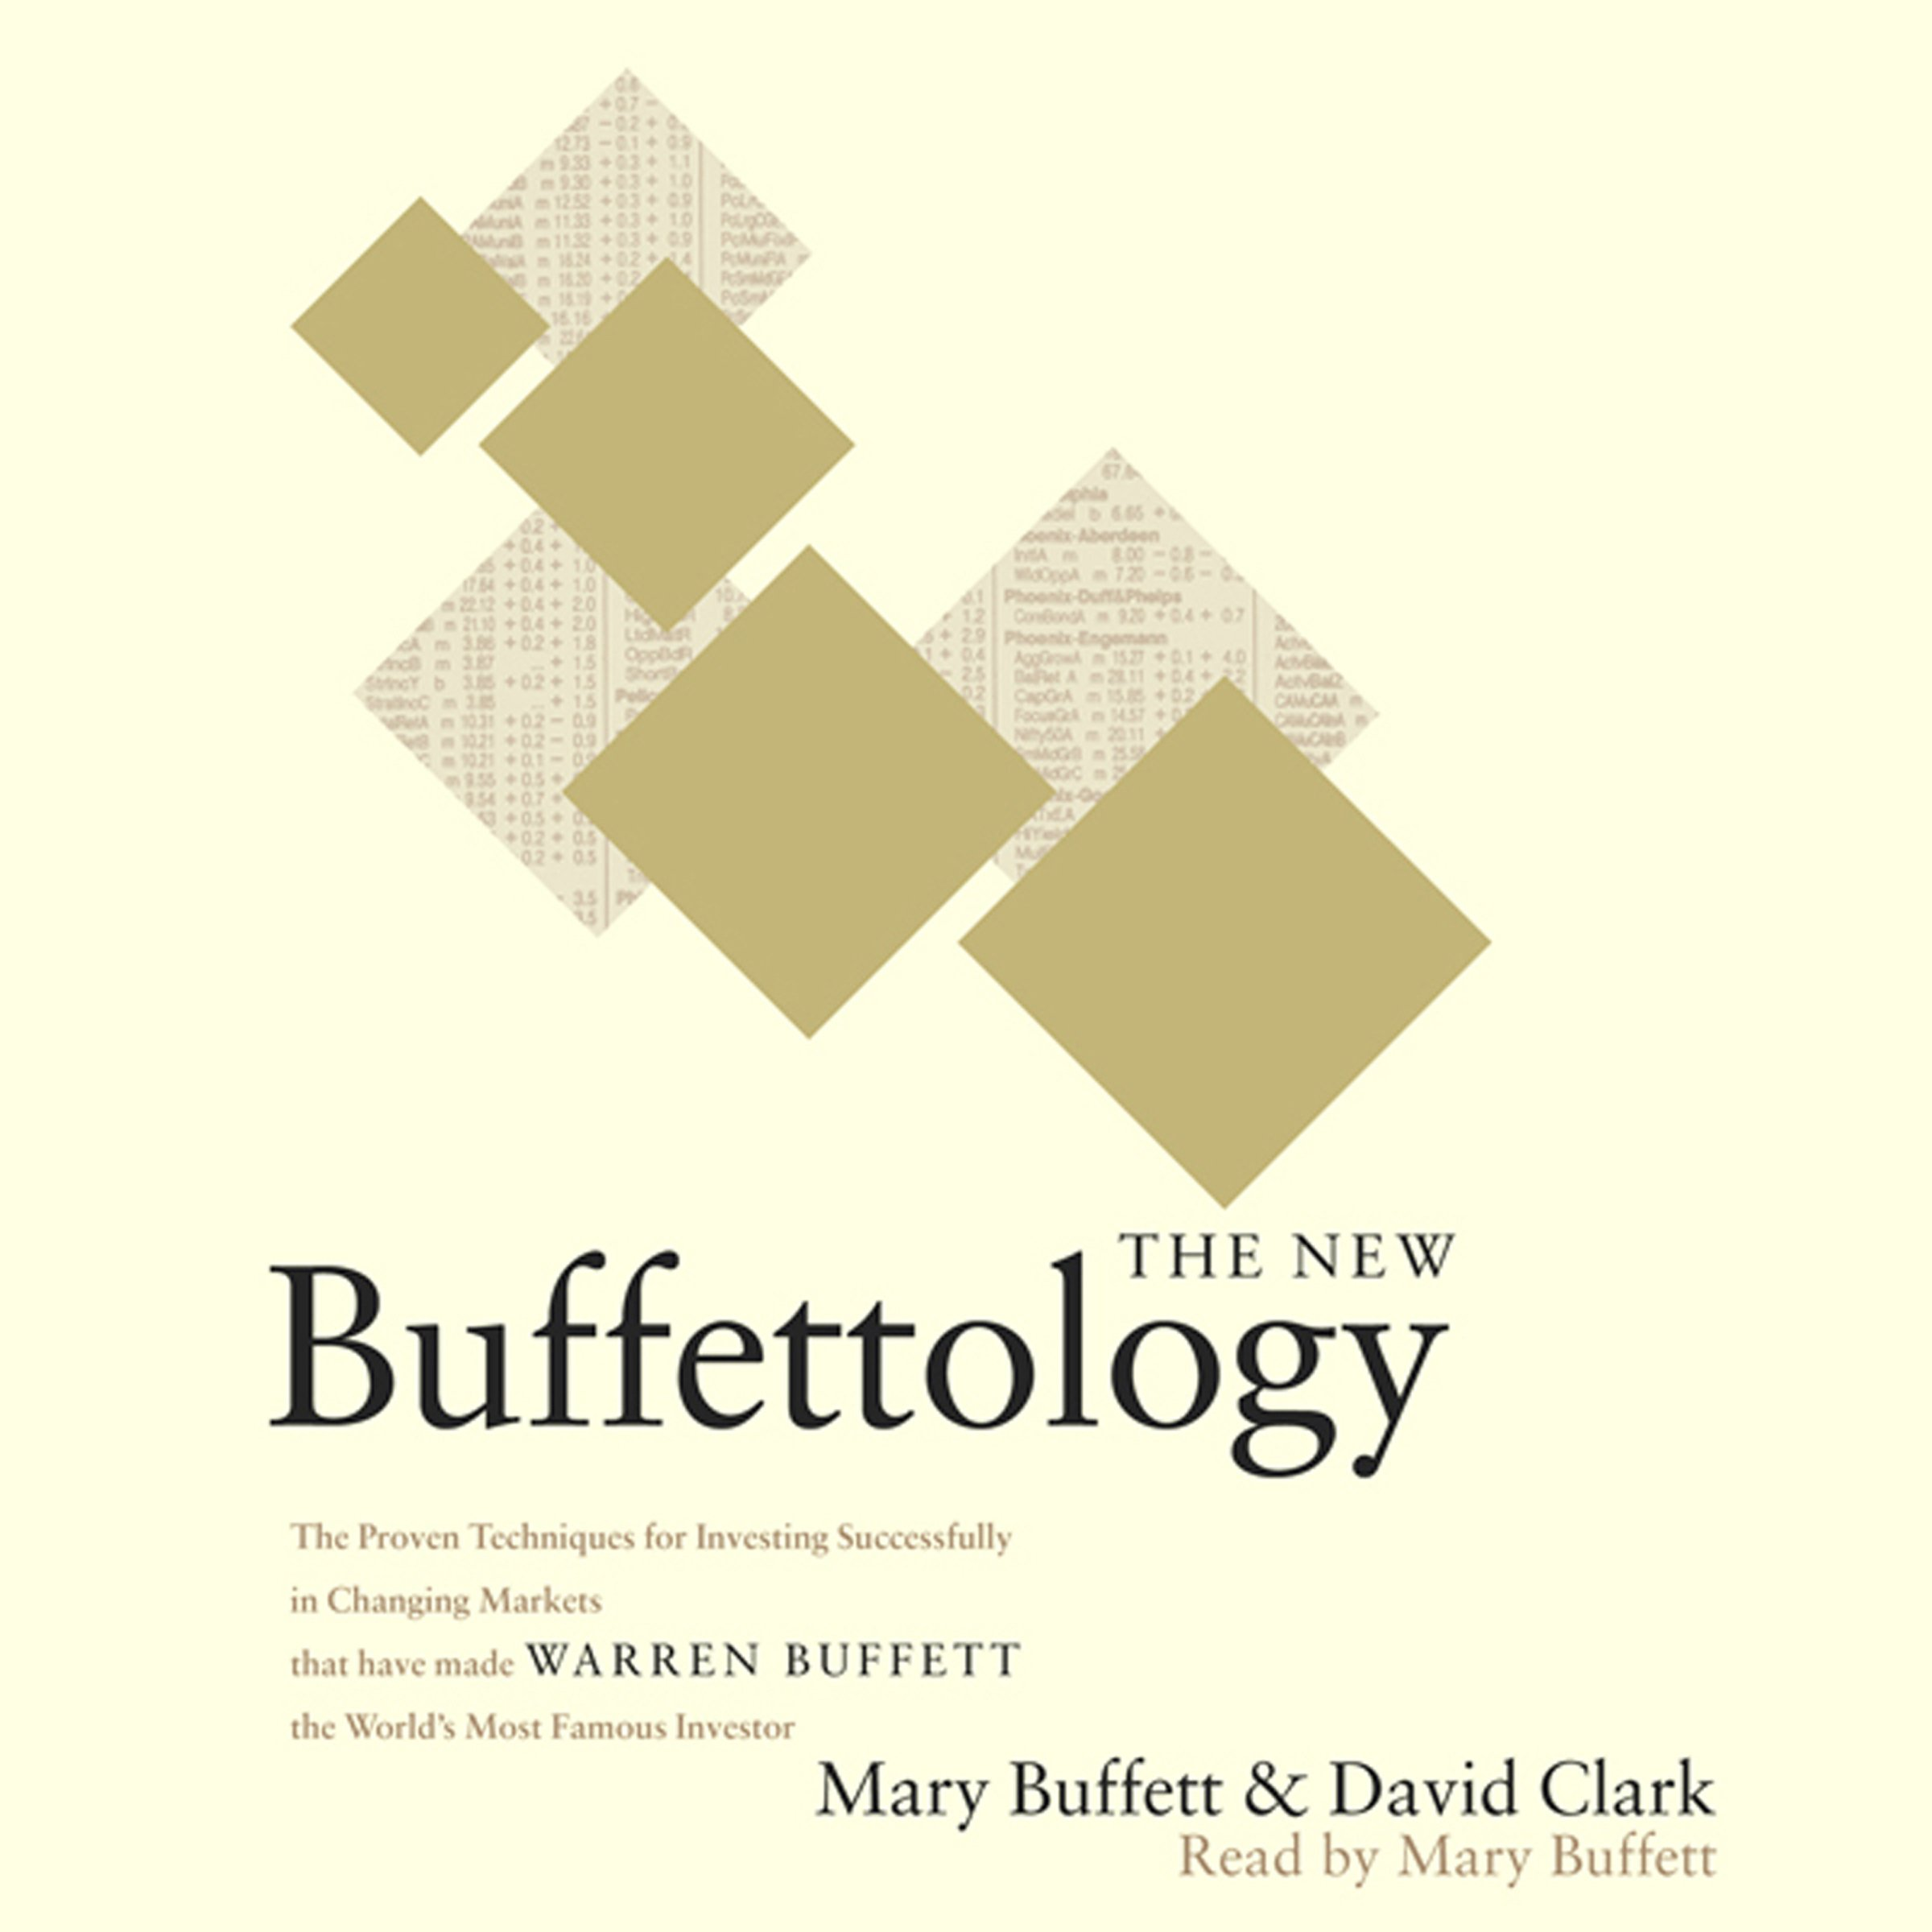 The New Buffettology: Warren Buffett's Proven Techniques for Investing Successfully in Changing Markets